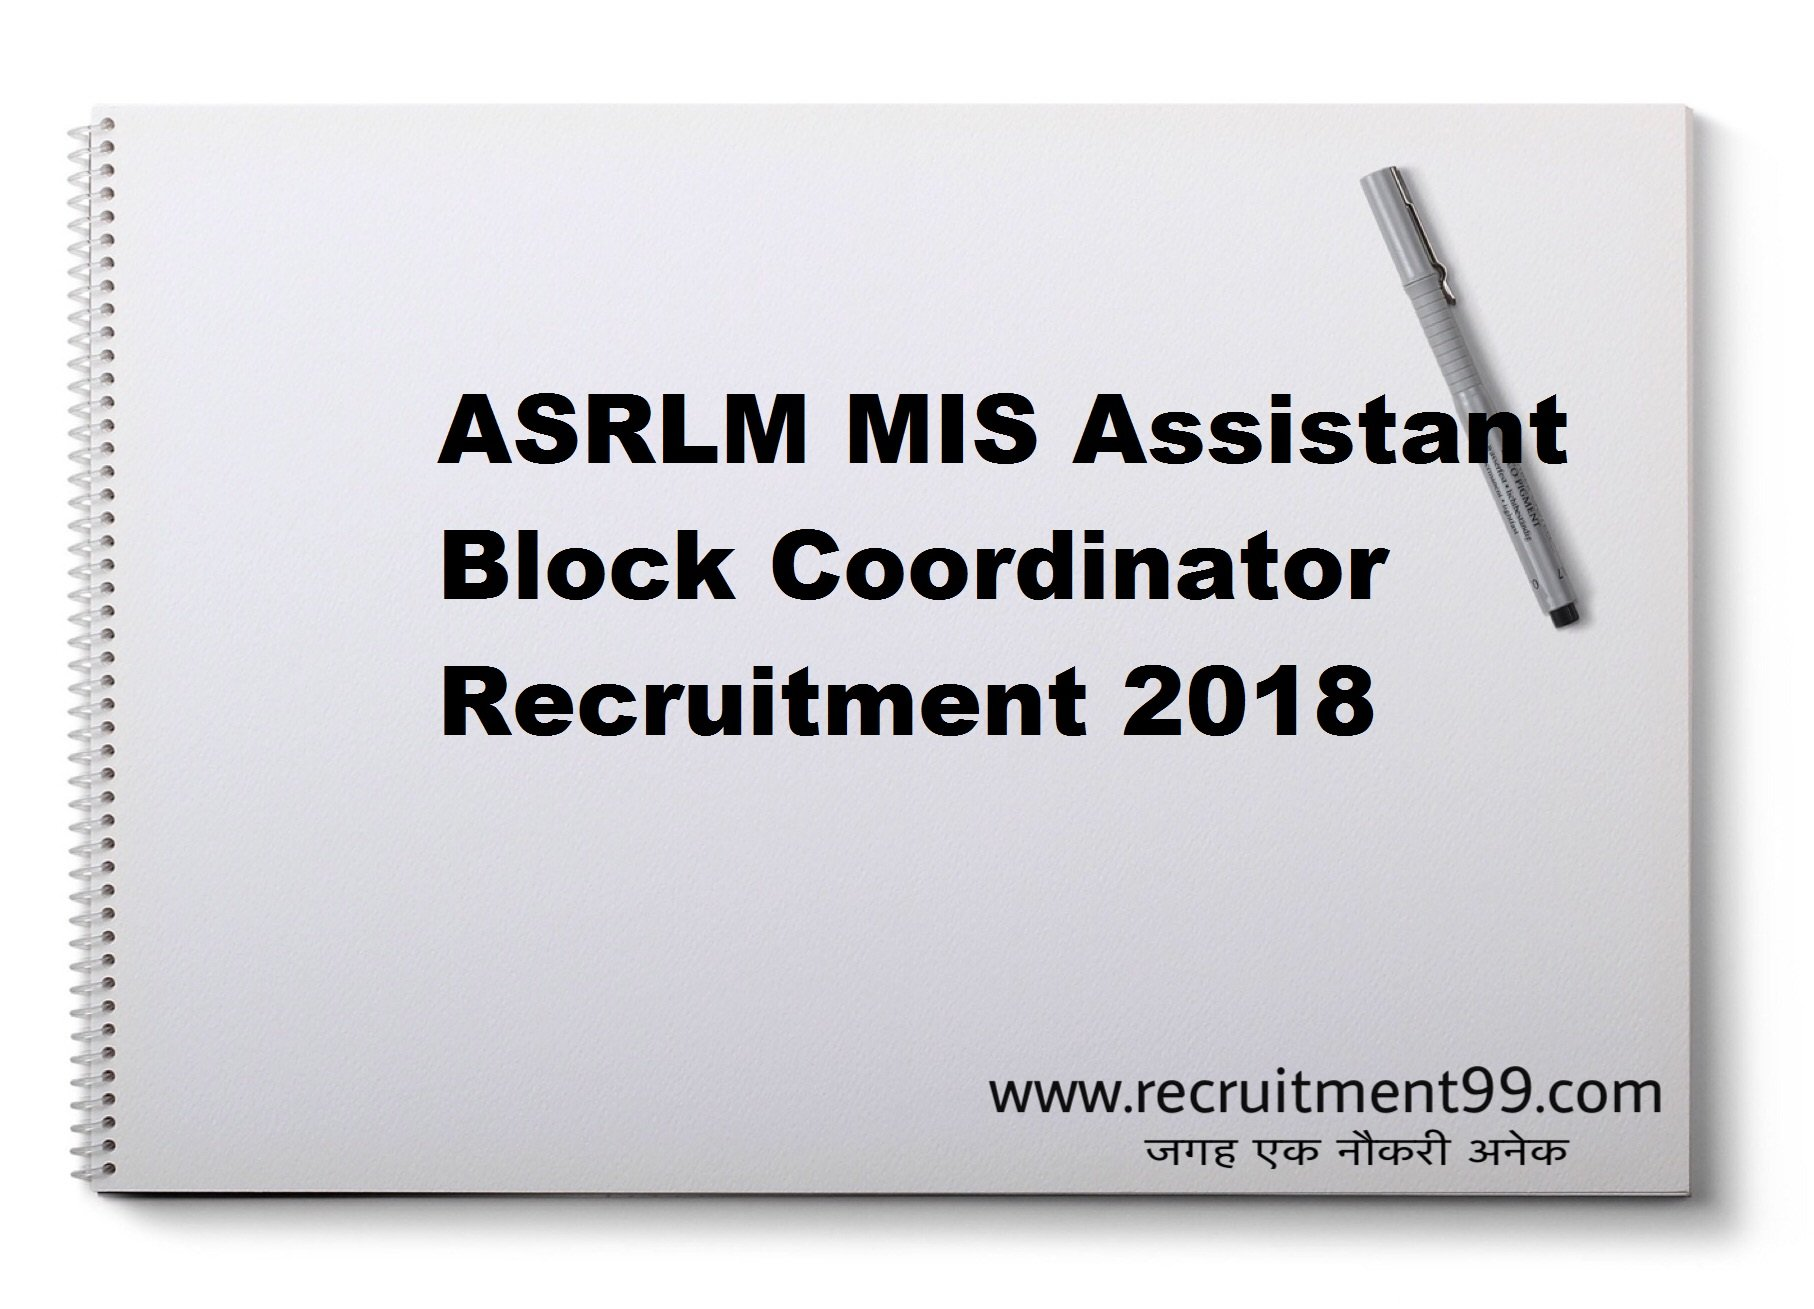 ASRLM MIS Assistant Block Coordinator Recruitment Admit Card Result 2018